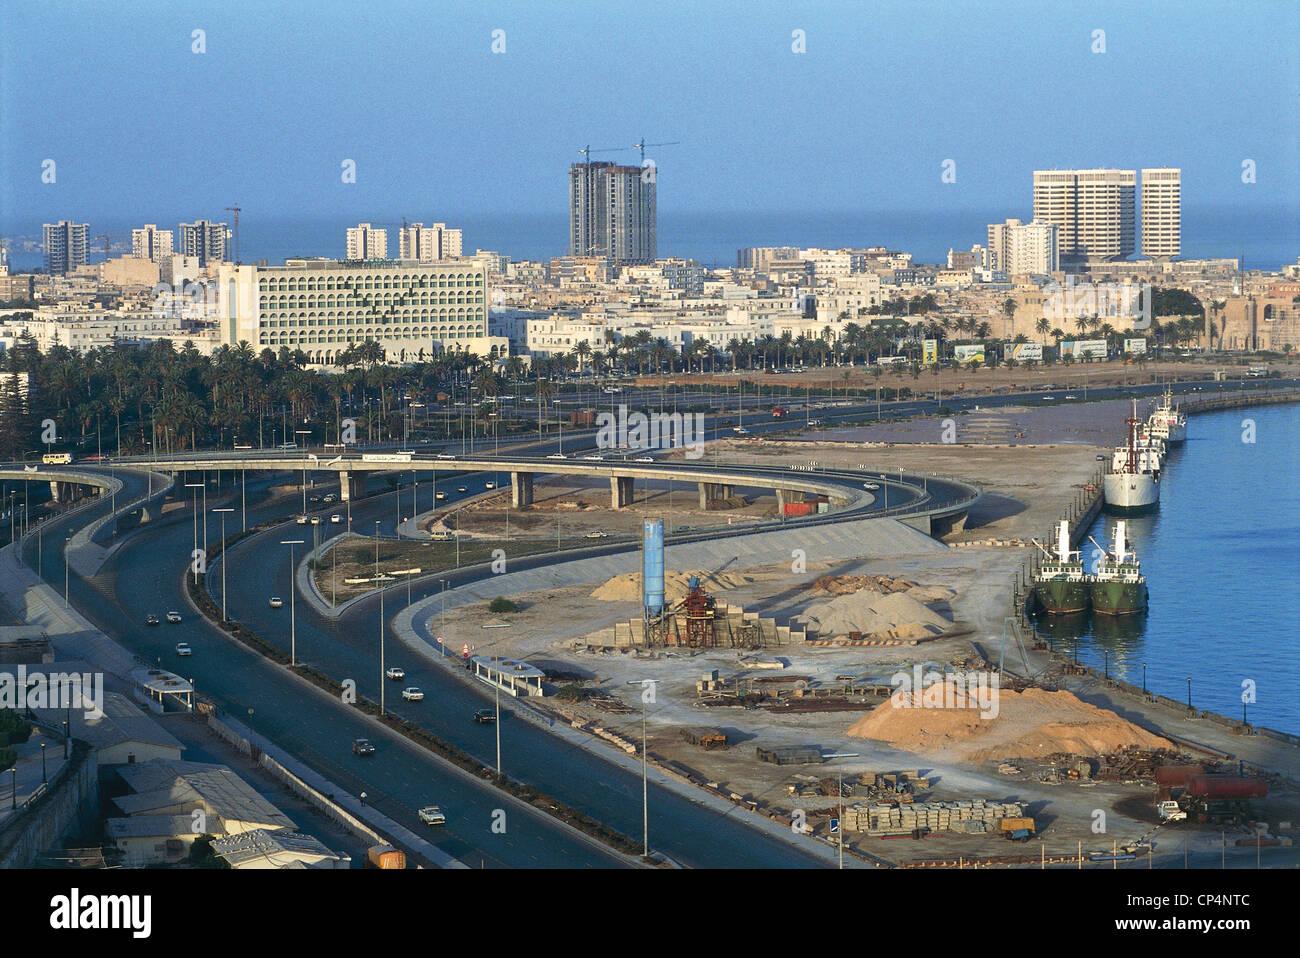 Libya >> Libya - Tripoli - Tripoli And The Port Stock Photo, Royalty Free Image: 48048124 - Alamy